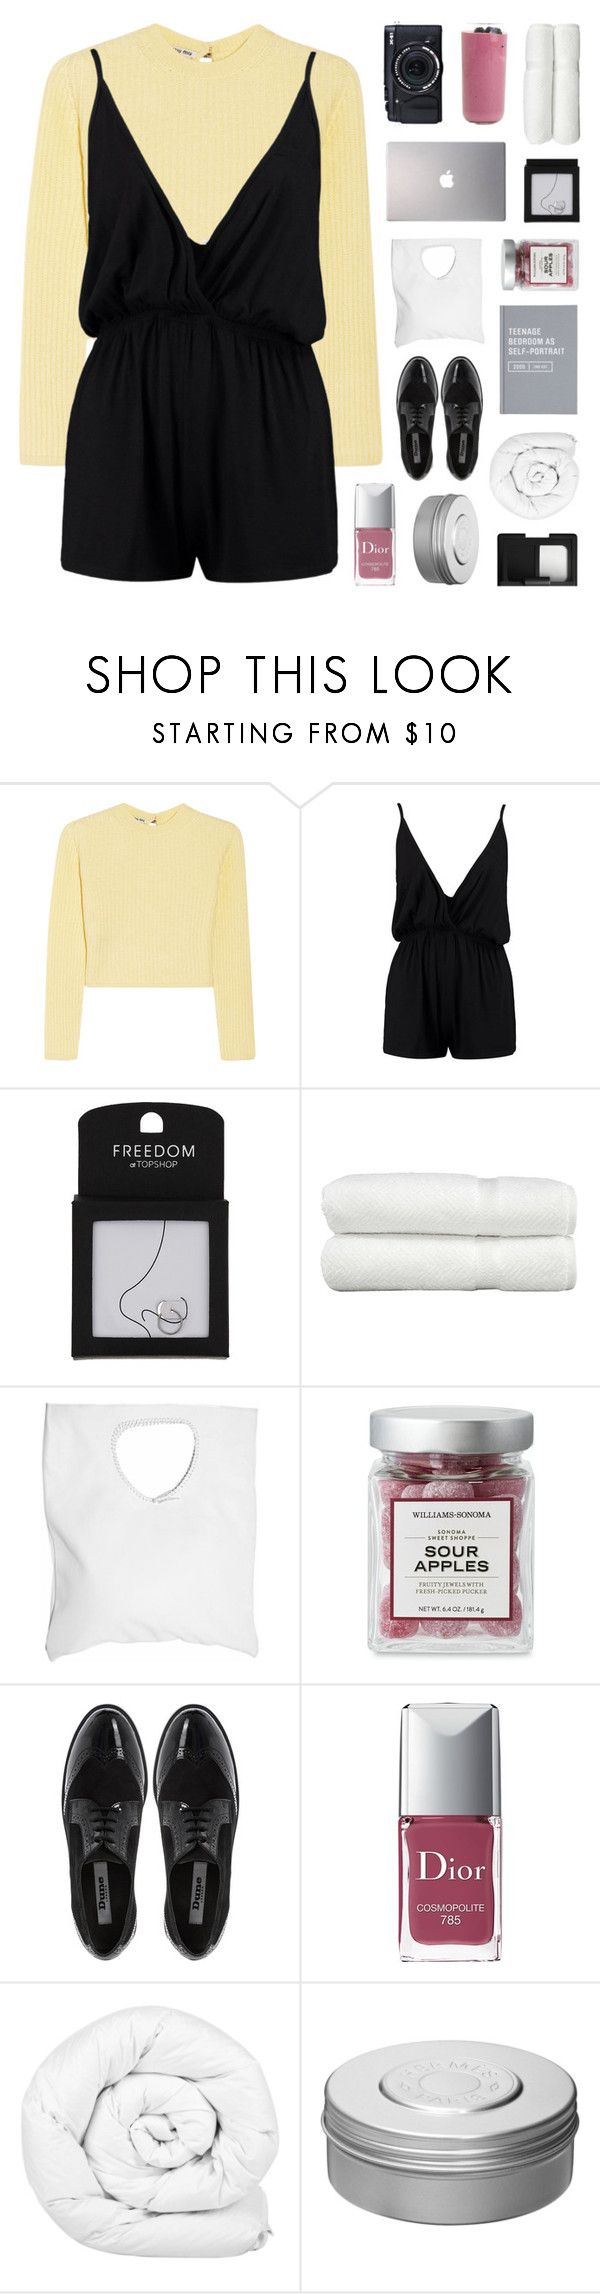 """goosebump soup and honey pie"" by bosspresident ❤ liked on Polyvore featuring Miu Miu, Boohoo, Fujifilm, Samsung, Topshop, Linum Home Textiles, Jennifer Haley, Dune, Christian Dior and Brinkhaus"